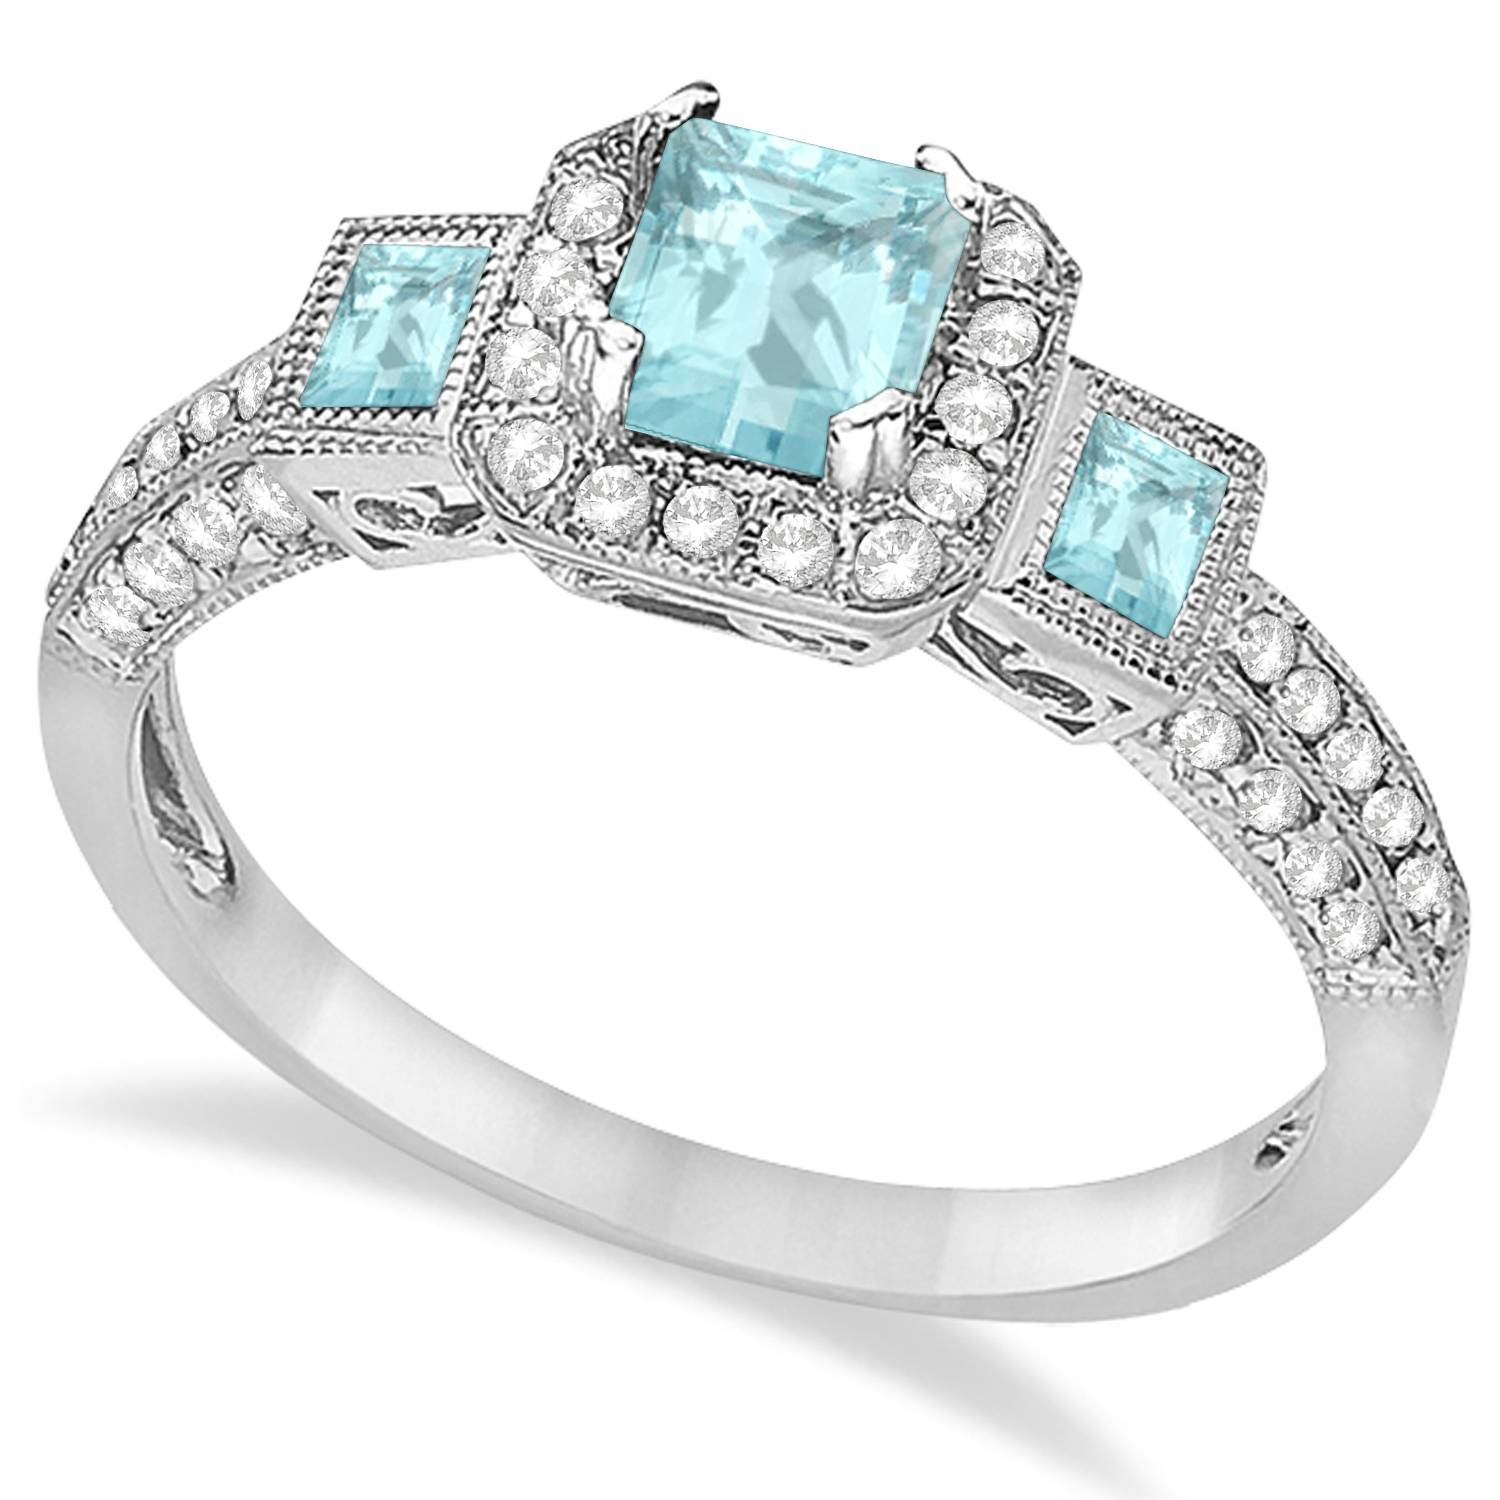 Aquamarine & Diamond Engagement Ring 14K White Gold  (View 3 of 15)